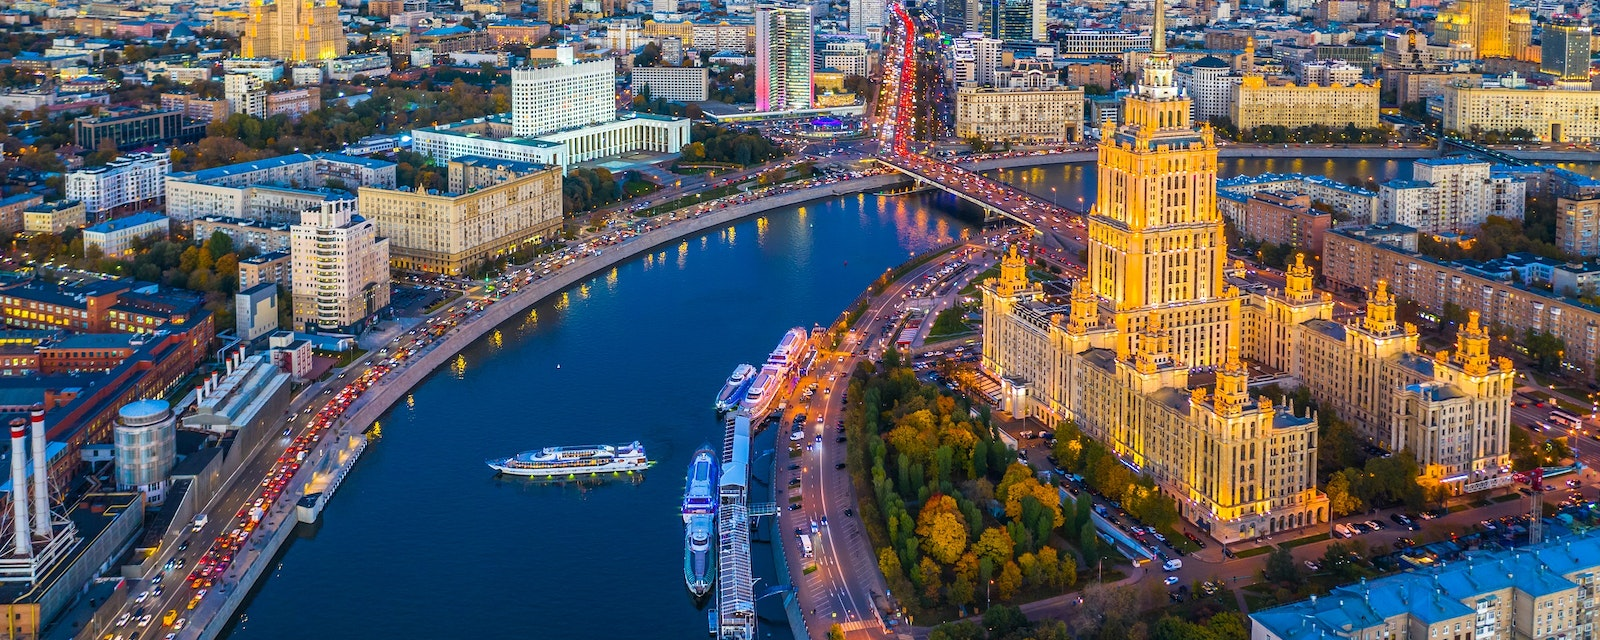 Moscow,City,With,Moscow,River,At,Night,,Moscow,Skyline,With